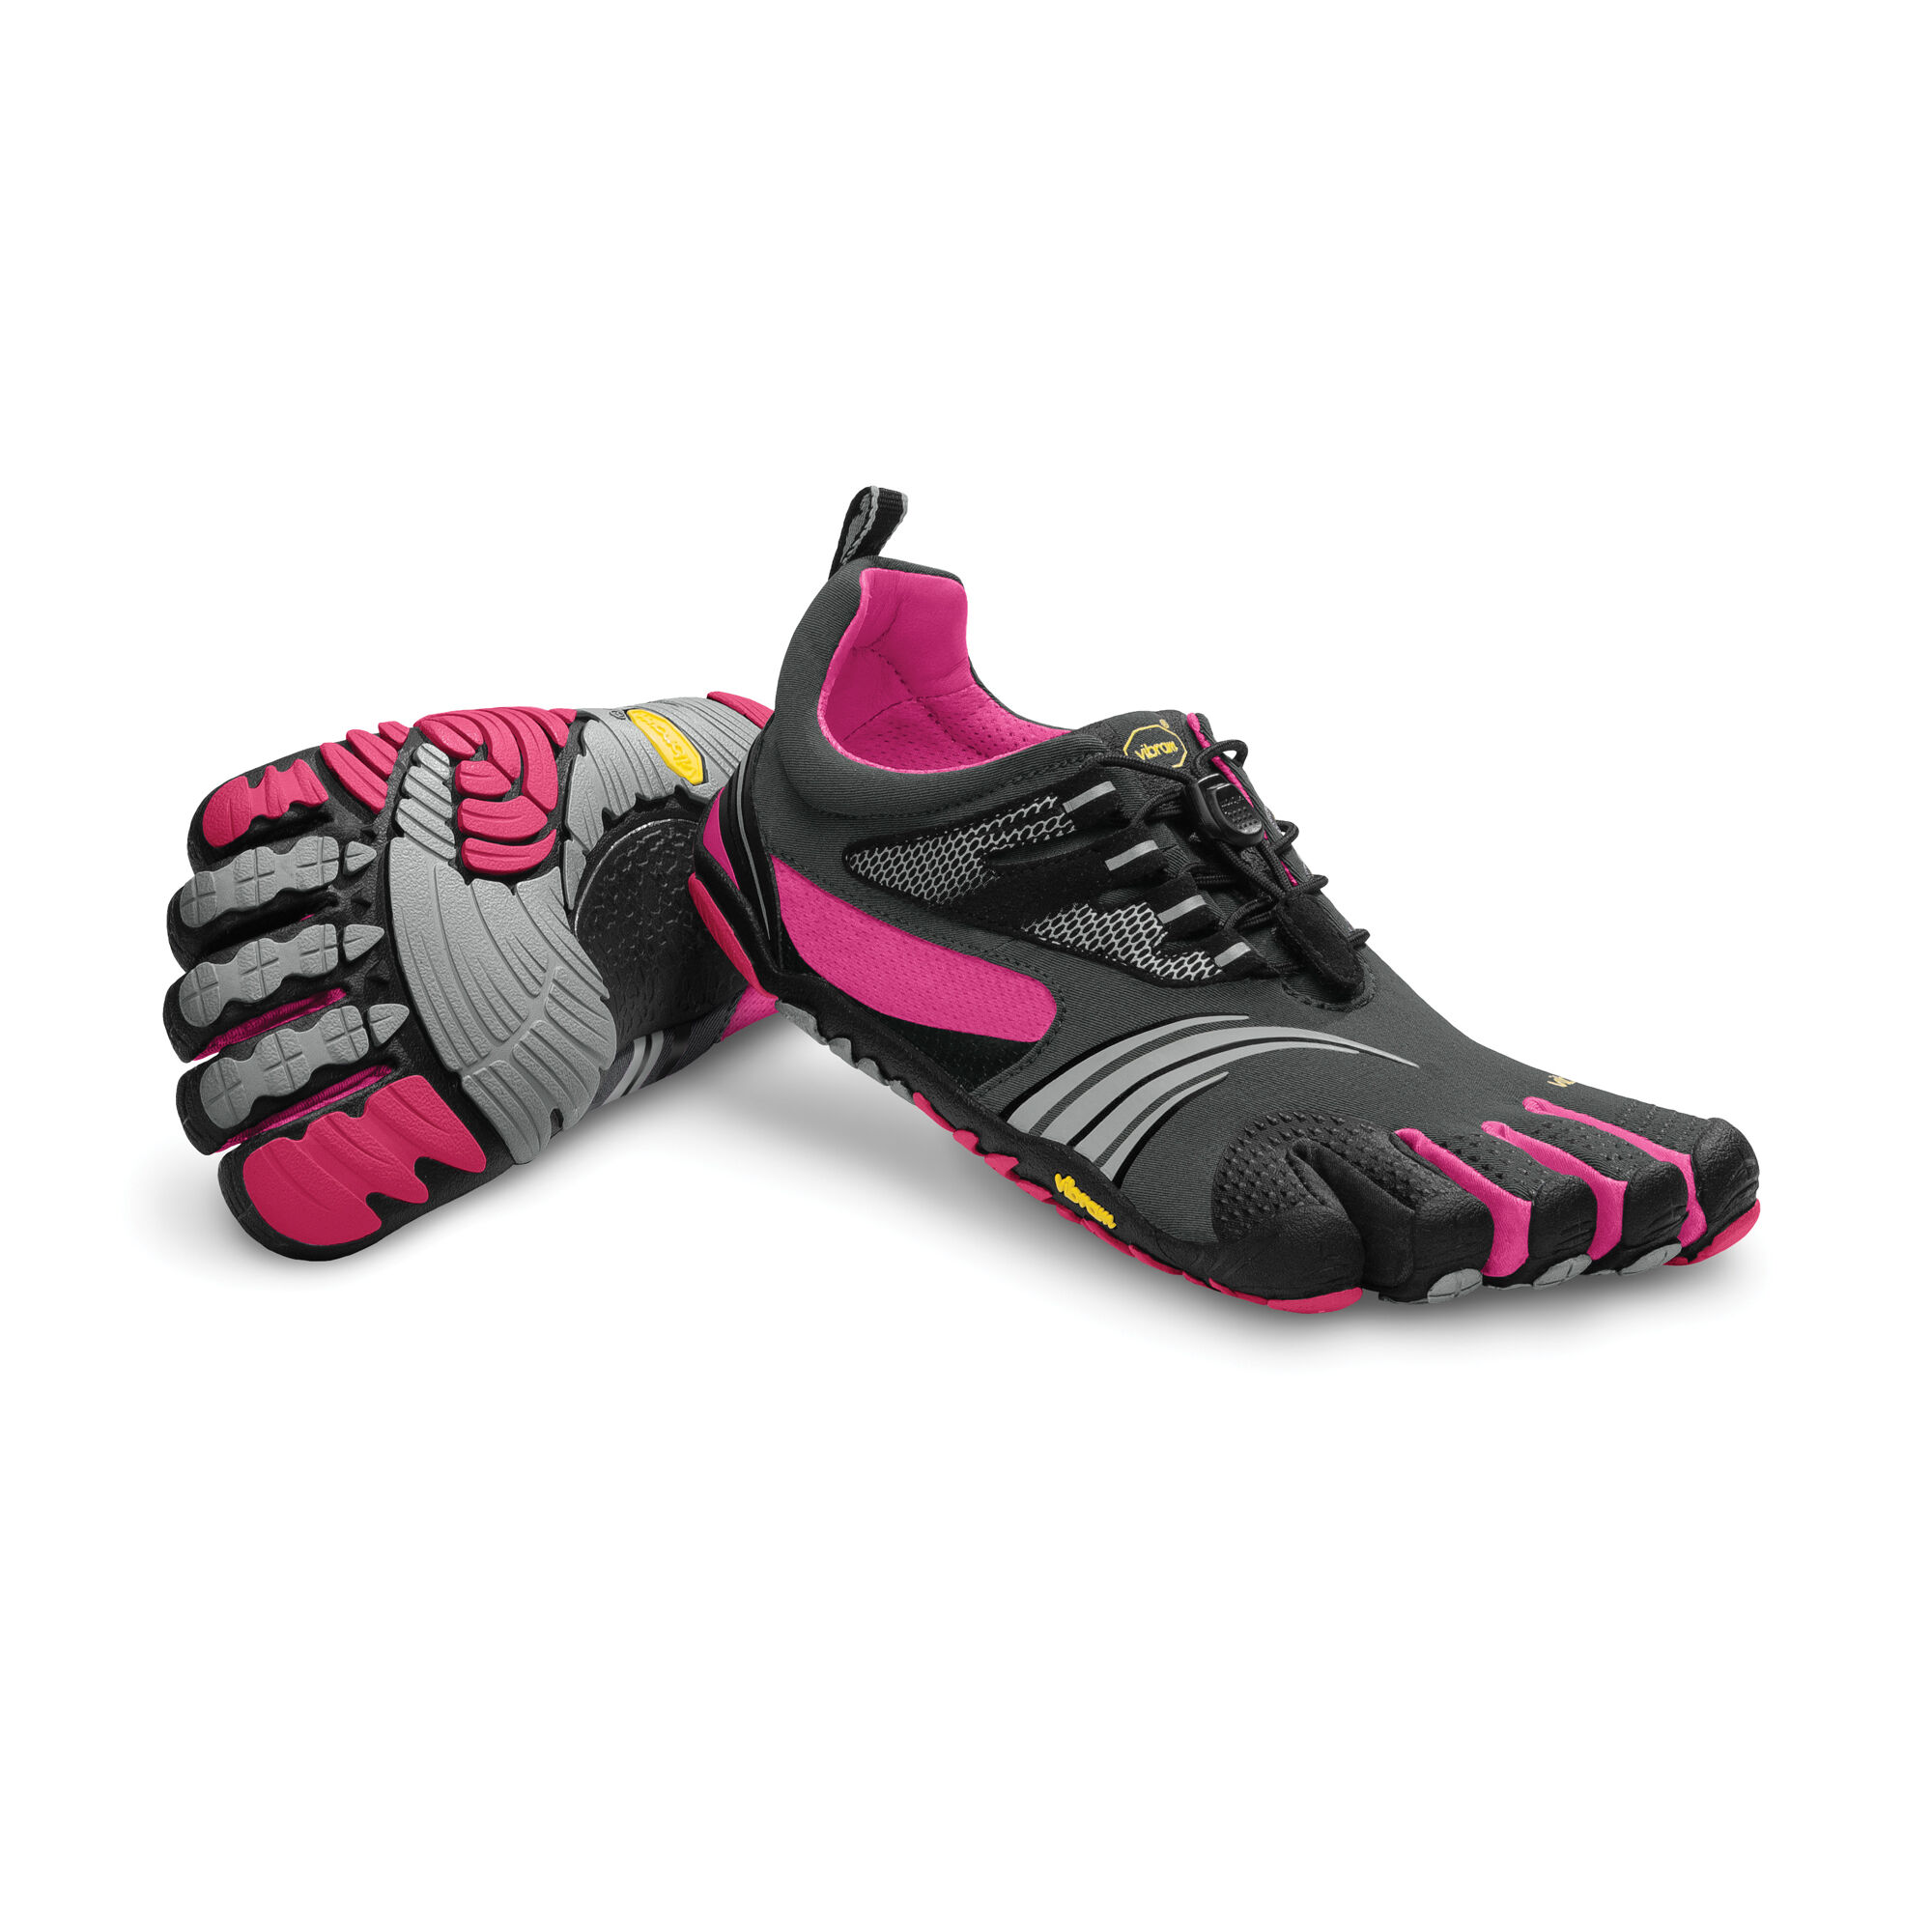 KMD Sport LS-W Womens Multisport Outdoor Shoes Vibram Fivefingers cUhqa